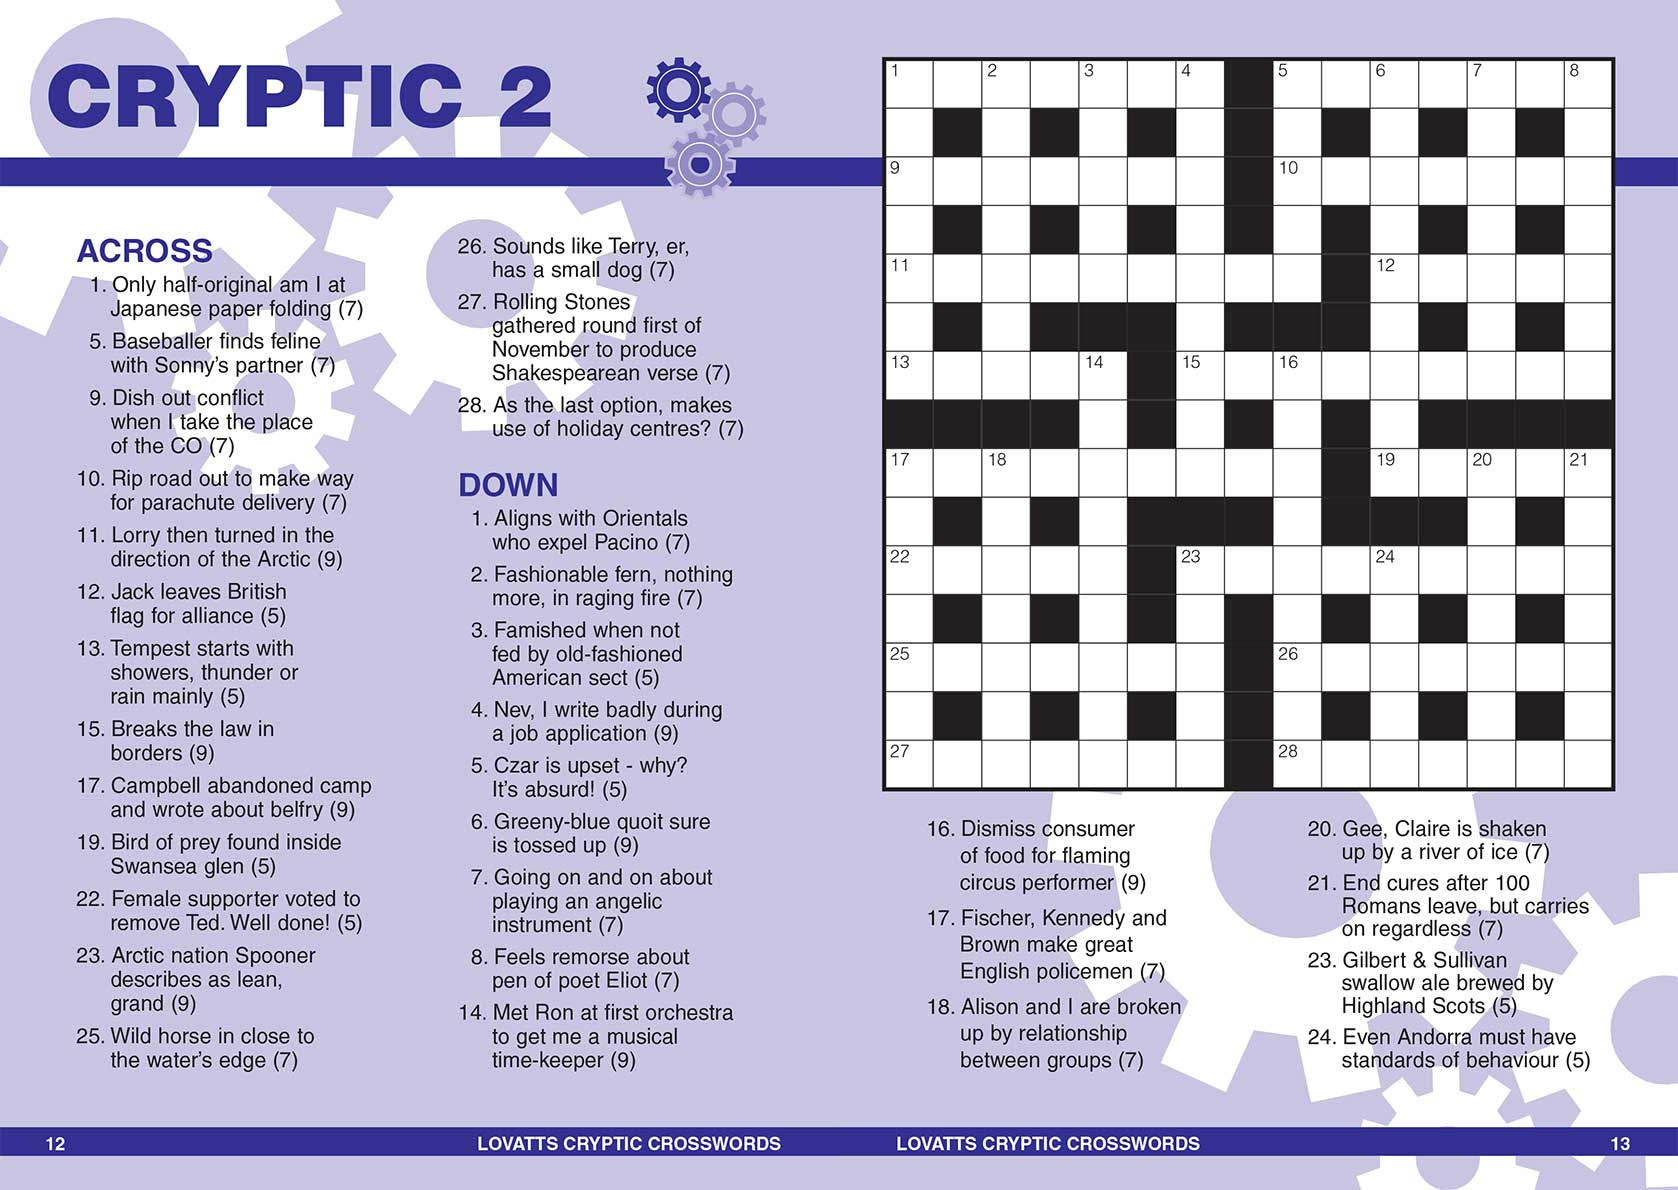 photograph about Cryptic Crosswords Printable titled Printable Cryptic Crossword Puzzles Nz Printable Crossword